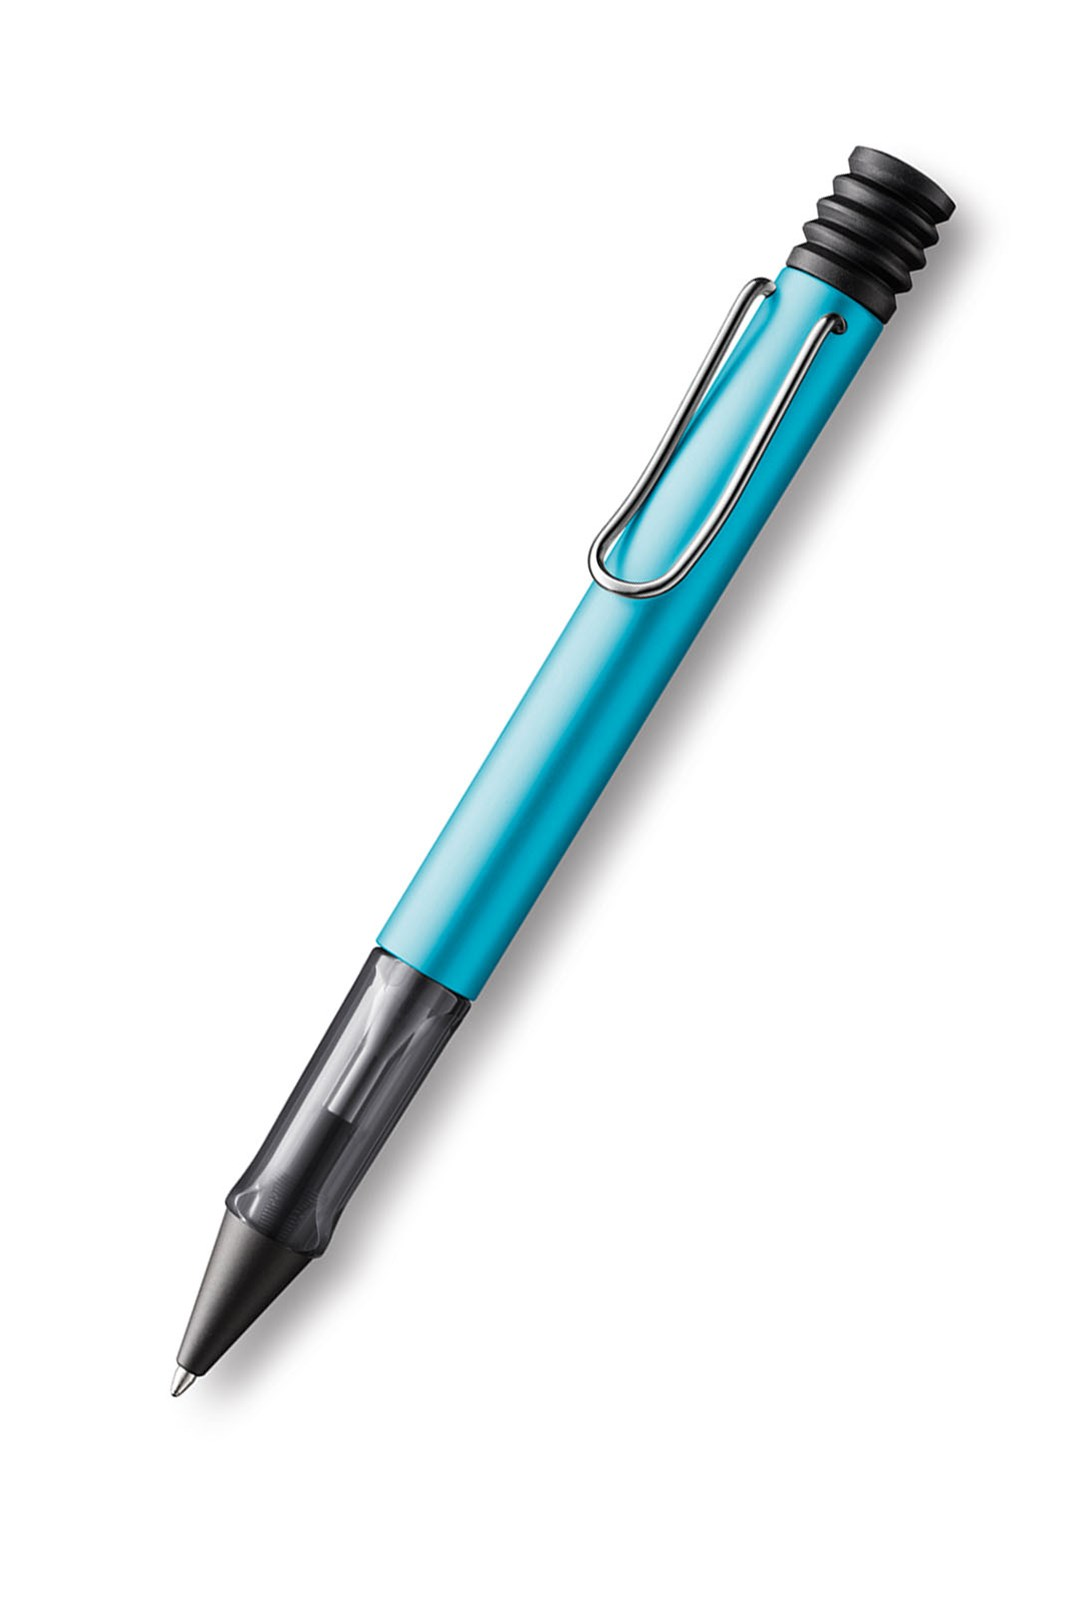 LAMY - AL-STAR - Ballpoint Pen - Limited Edition Pacific